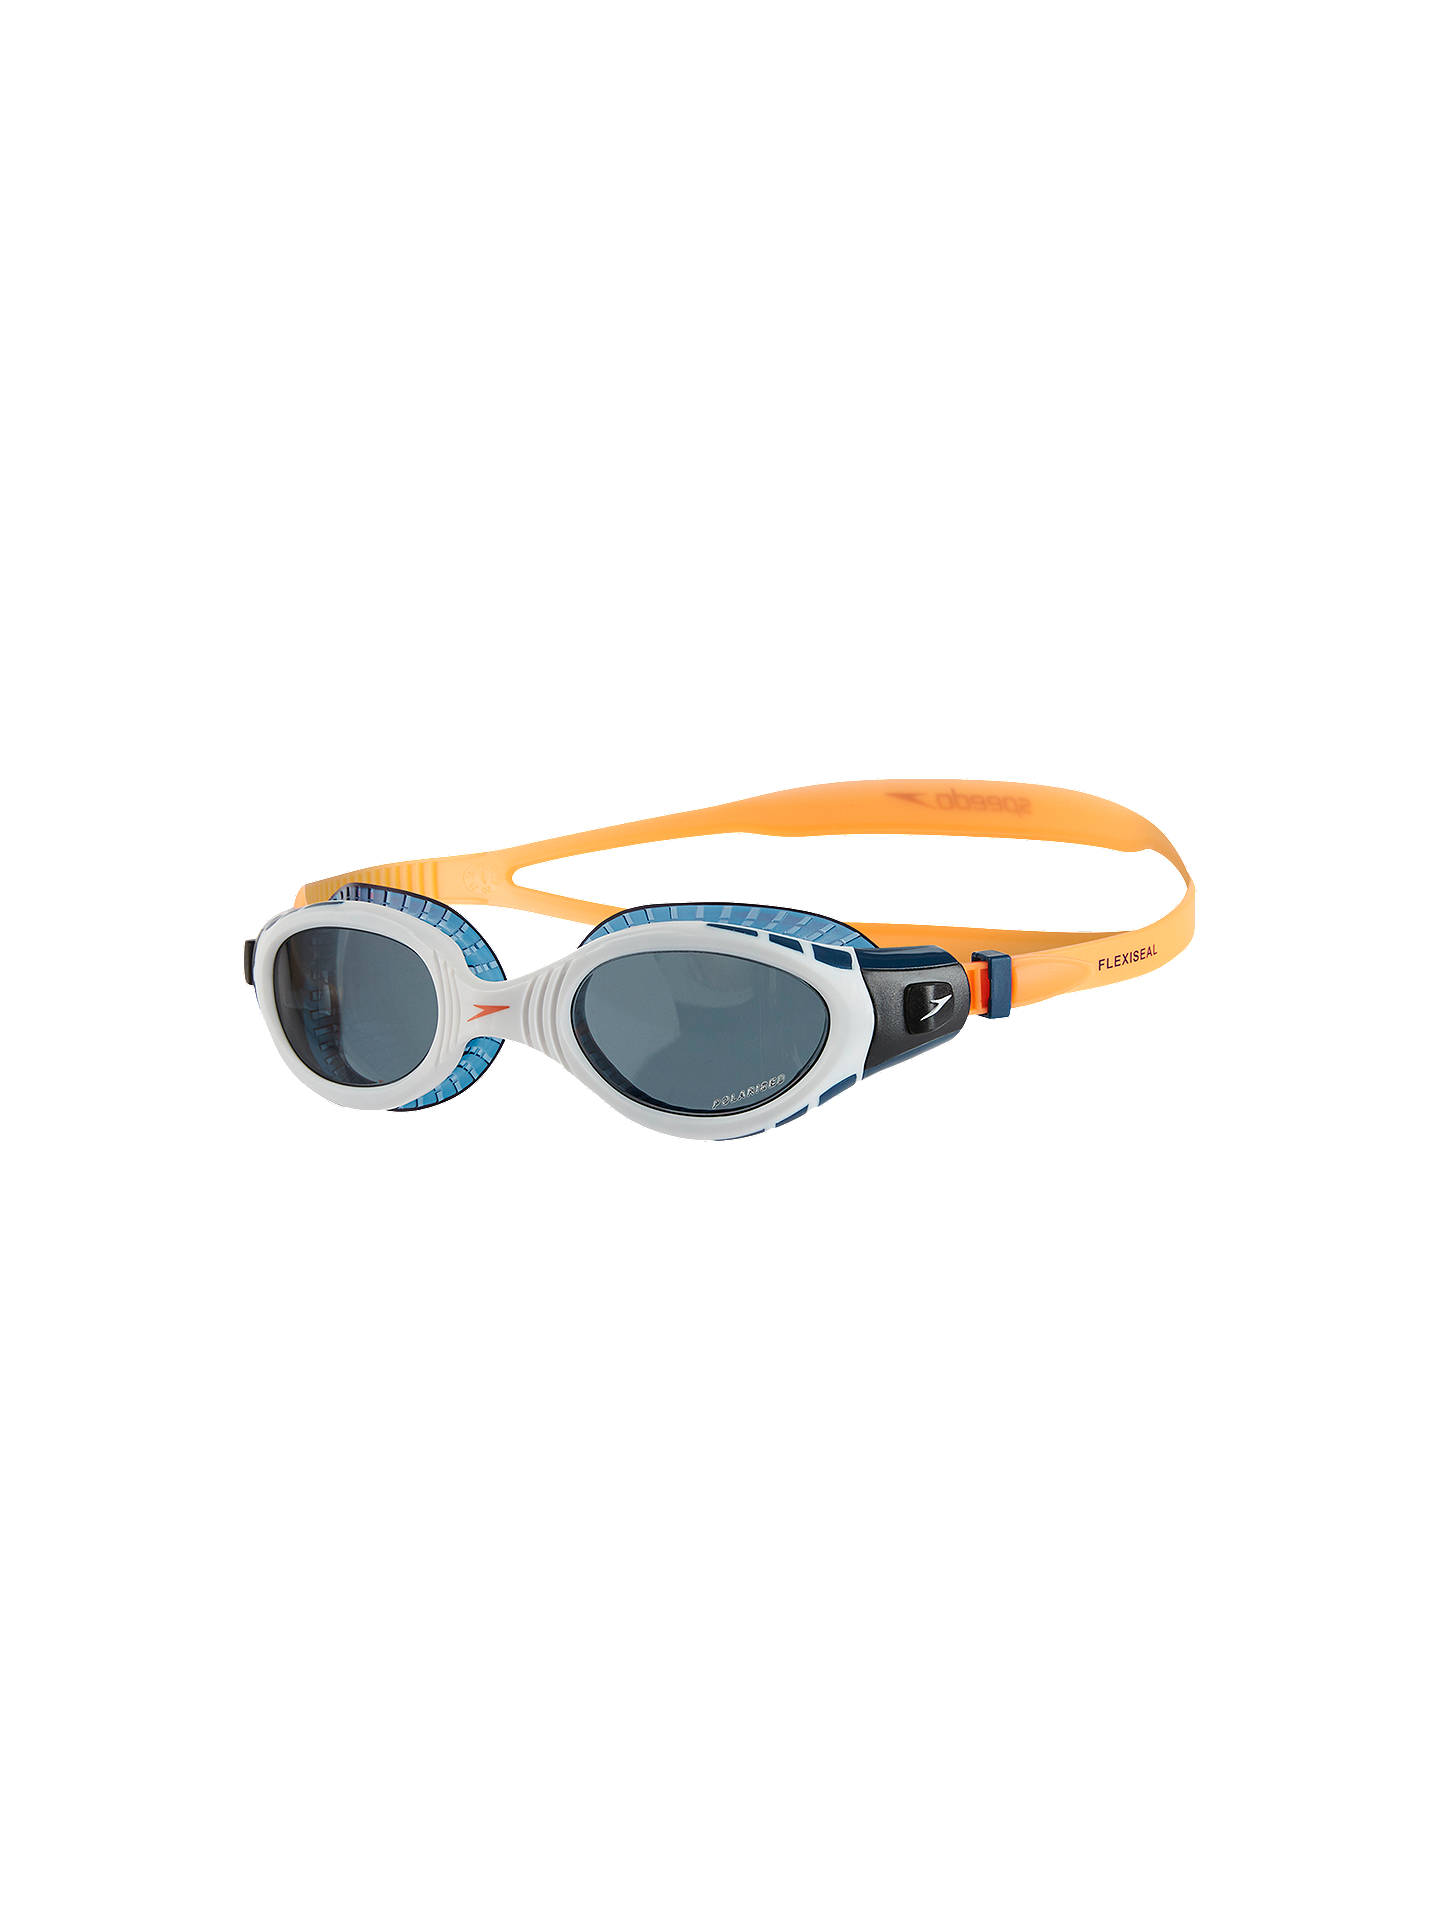 Buy Speedo Futura Biofuse Flexiseal Triathlon Swimming Goggles, Fluorescent Orange/White/Smoke Online at johnlewis.com